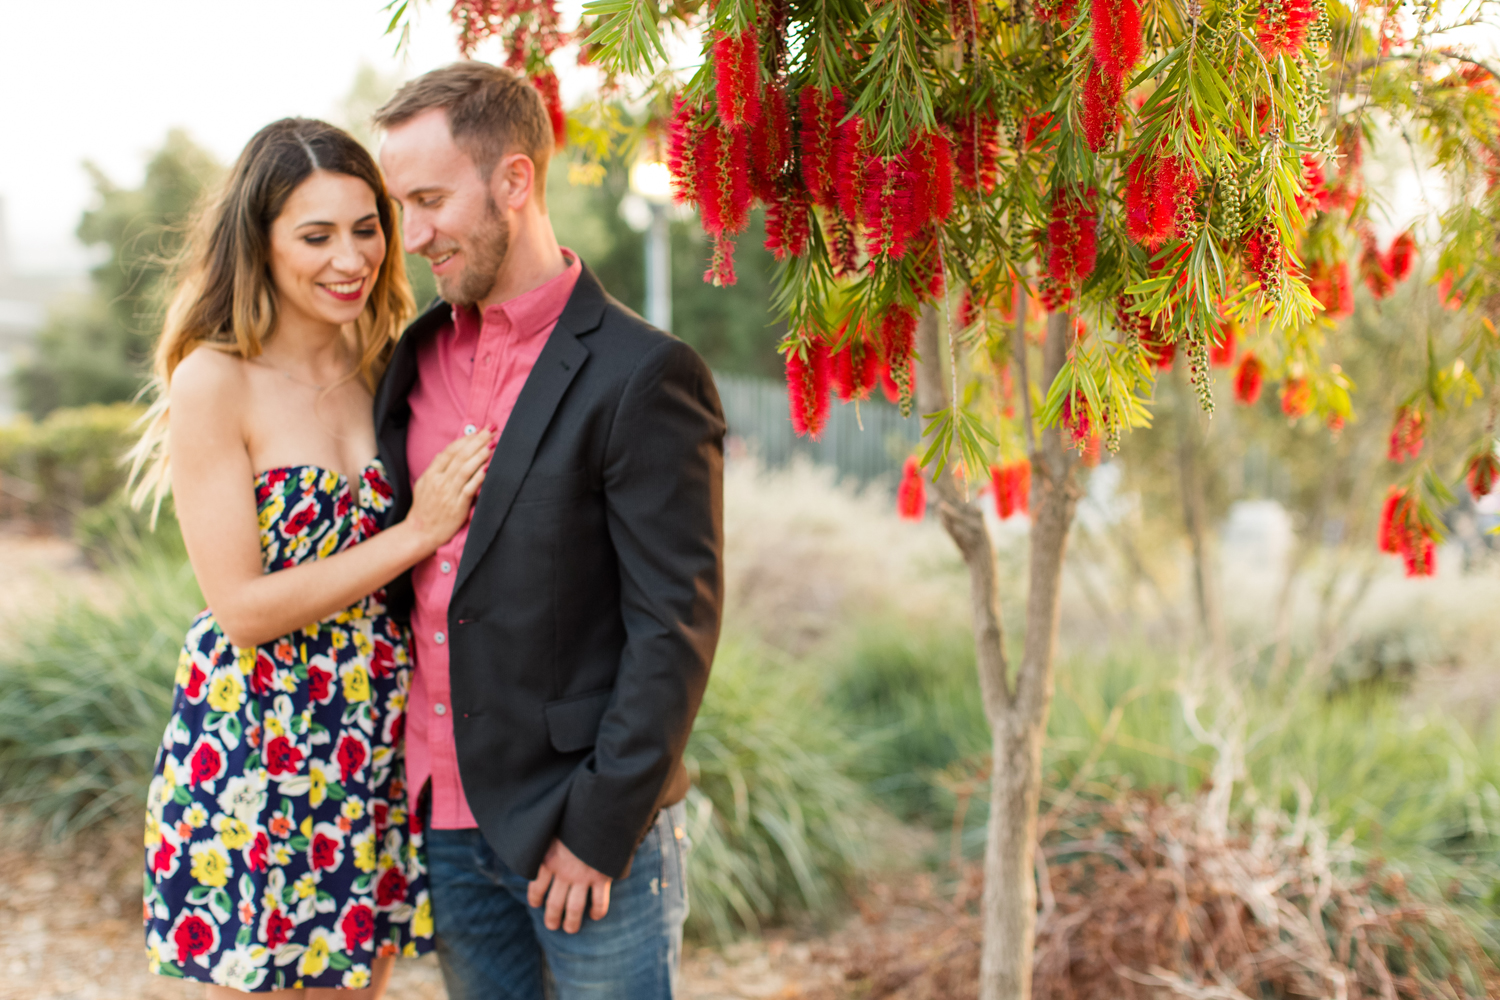 barnsdall-park-engagement-photography007.jpg